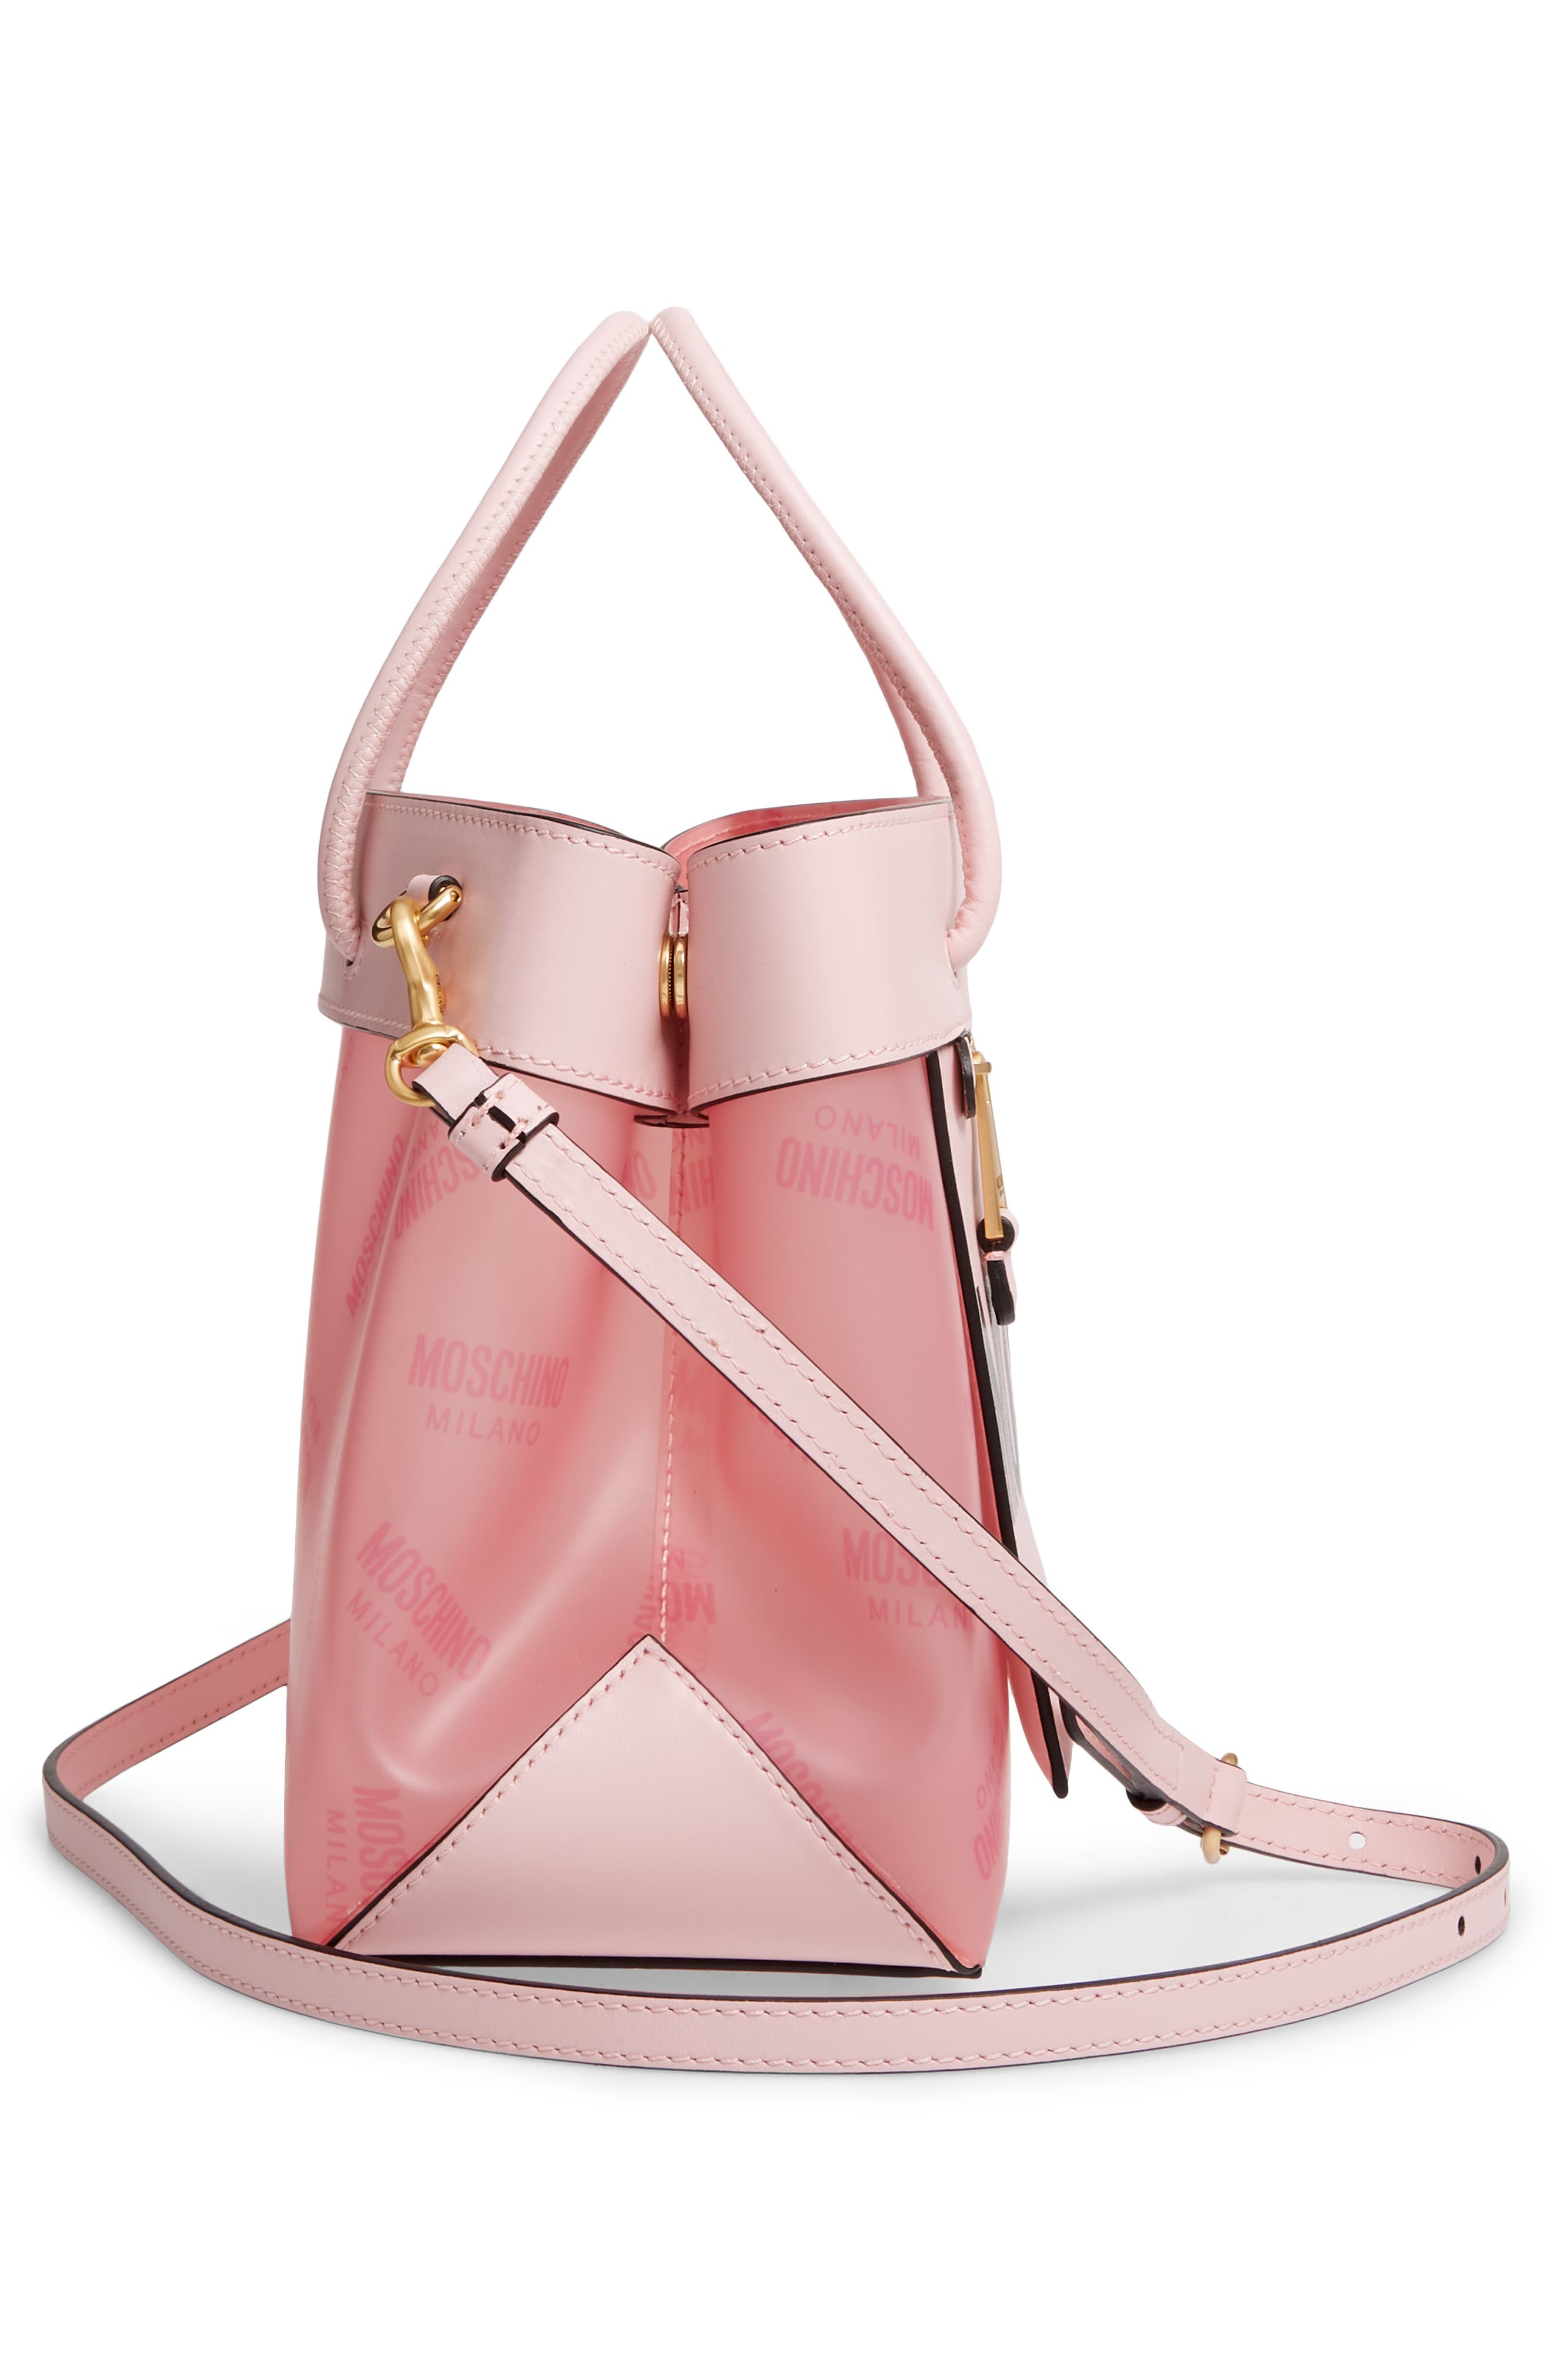 MOSCHINO,                             Translucent Logo Tote,                             Alternate thumbnail 5, color,                             PINK